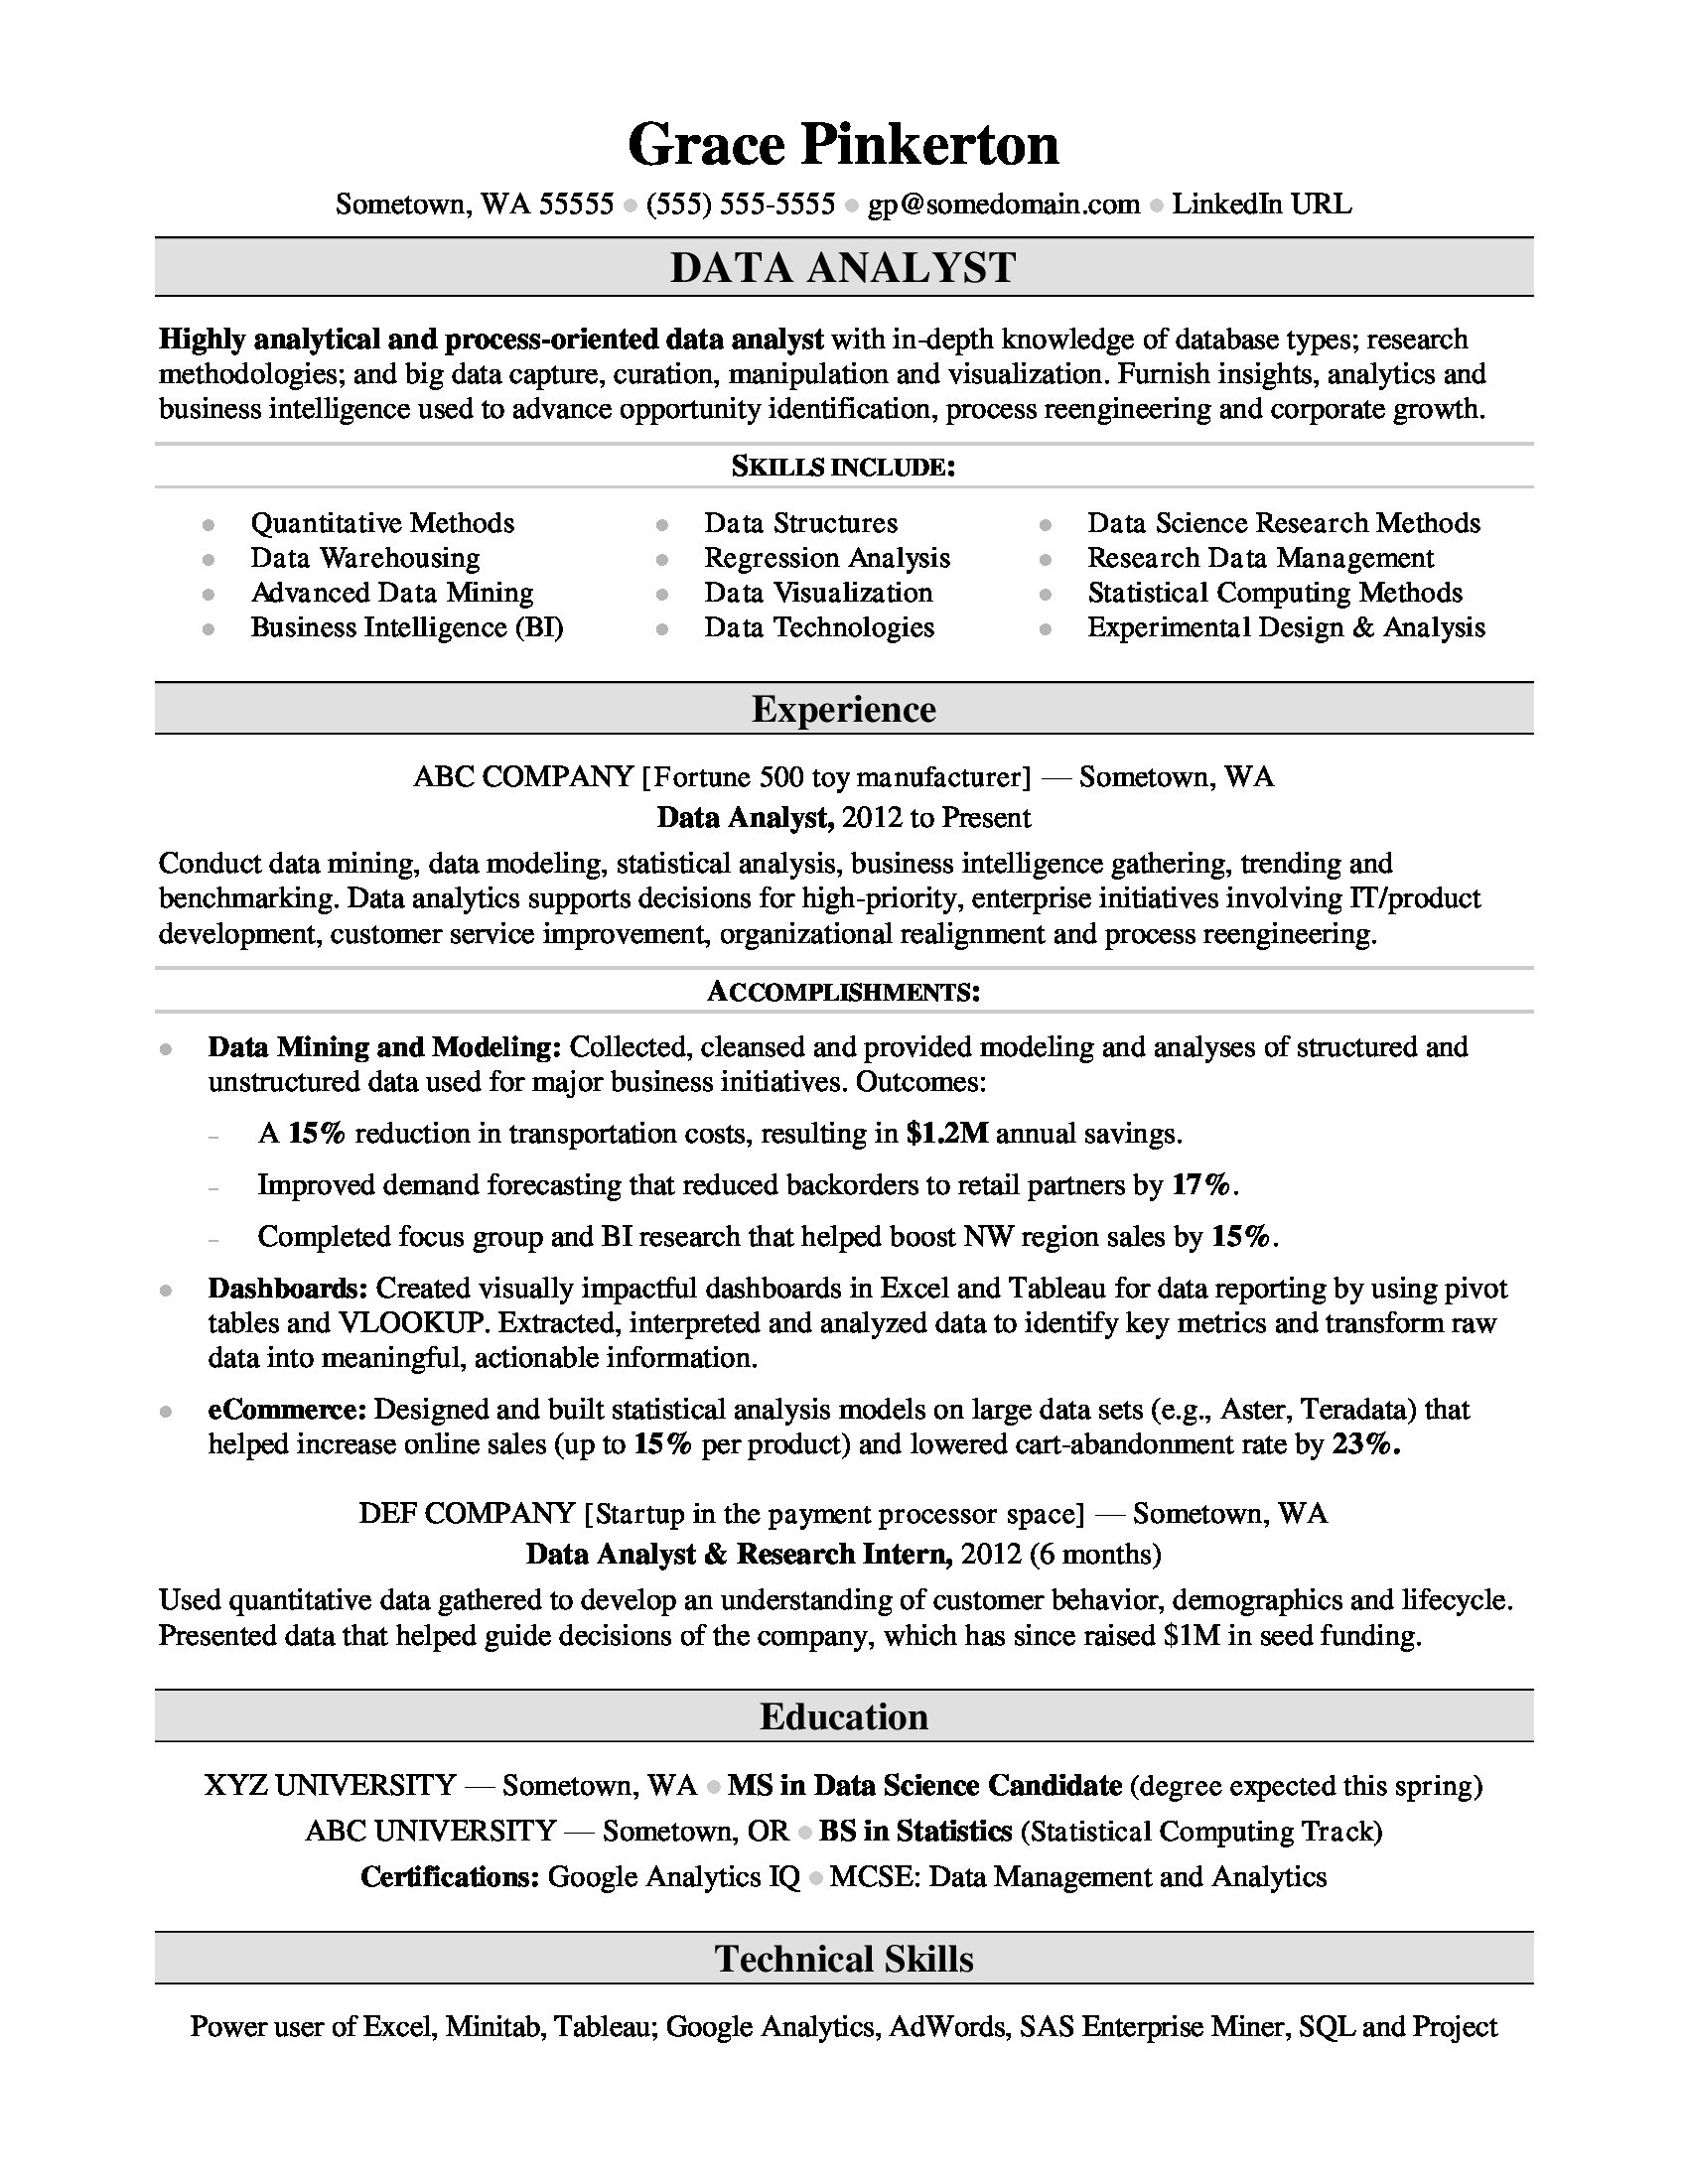 Data Analyst Resume Sample  Business Process Analyst Resume